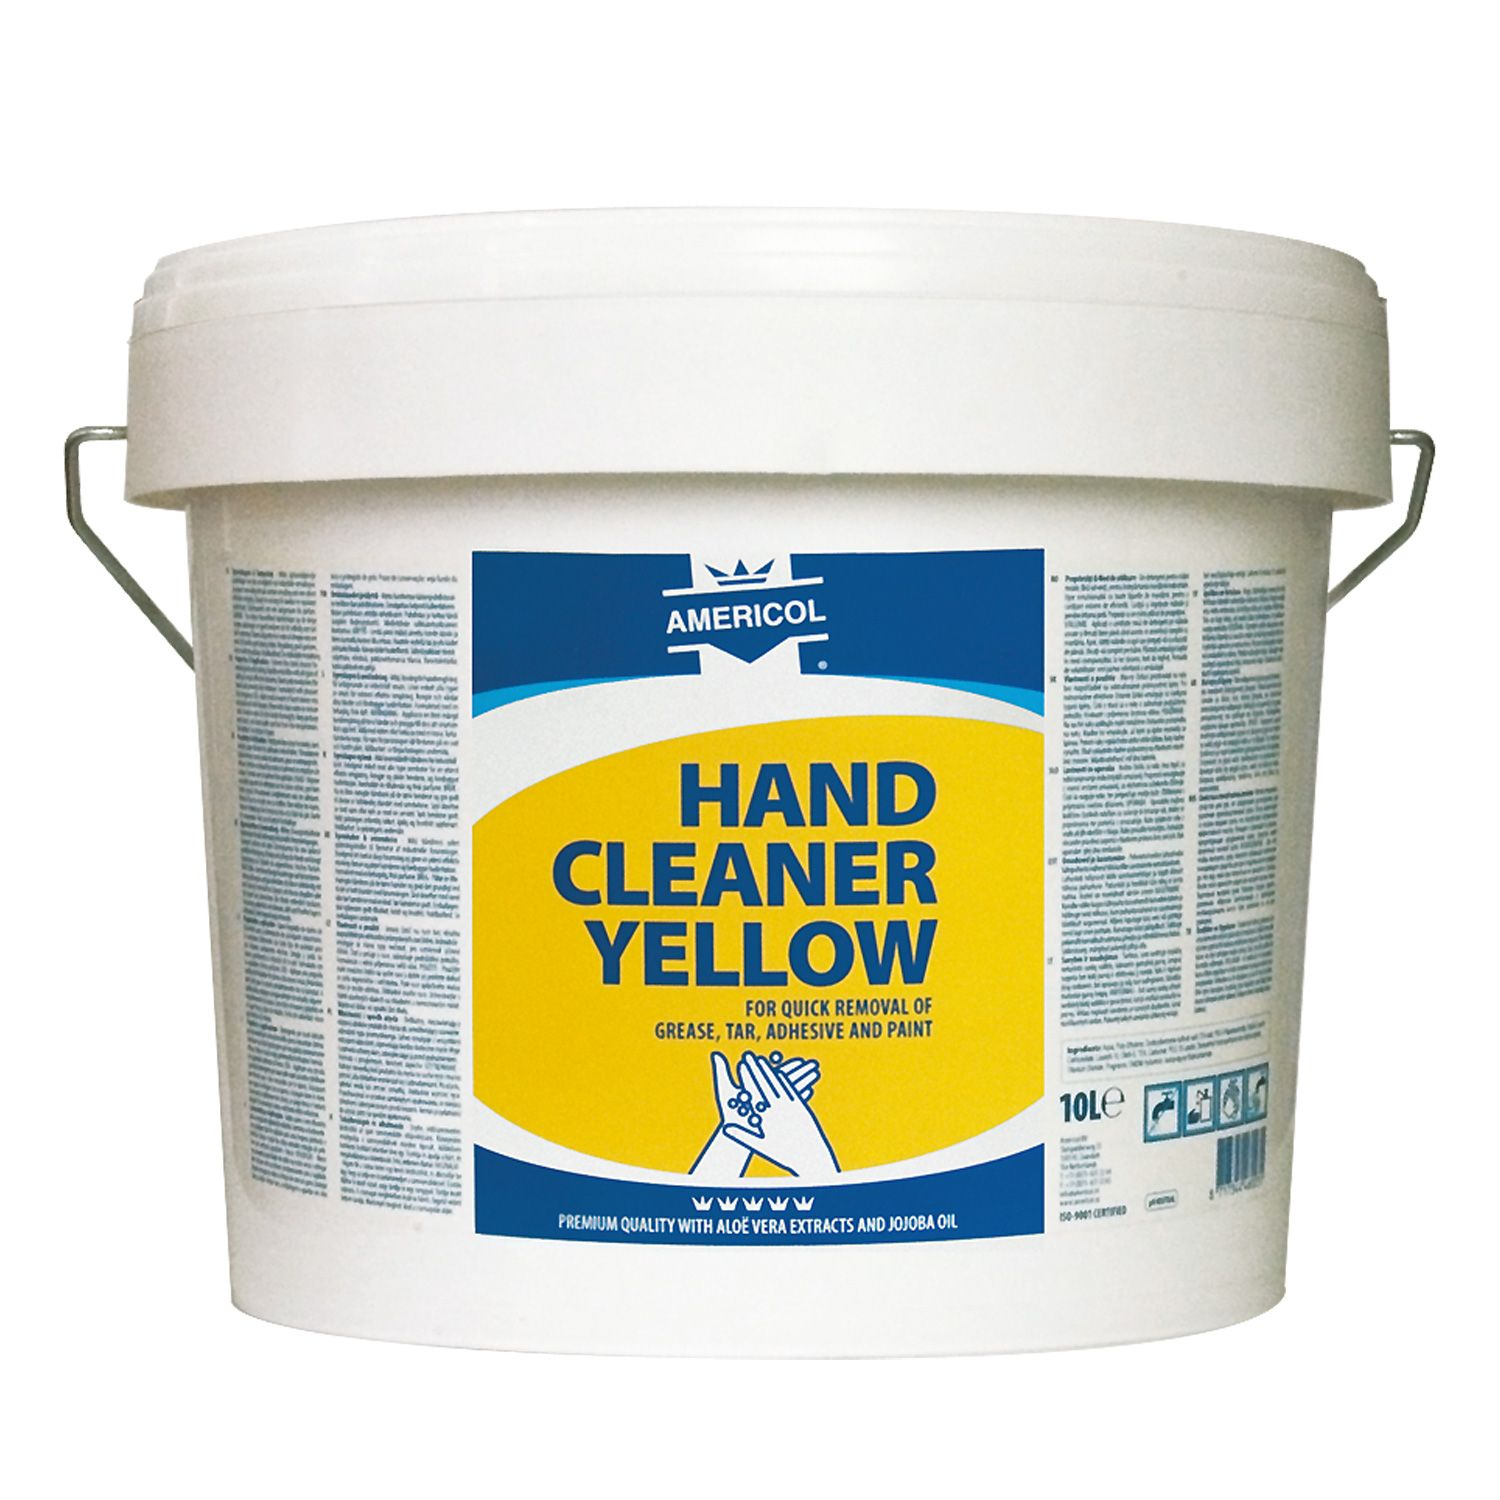 AMERICOL Hand Cleaner Yellow 10L